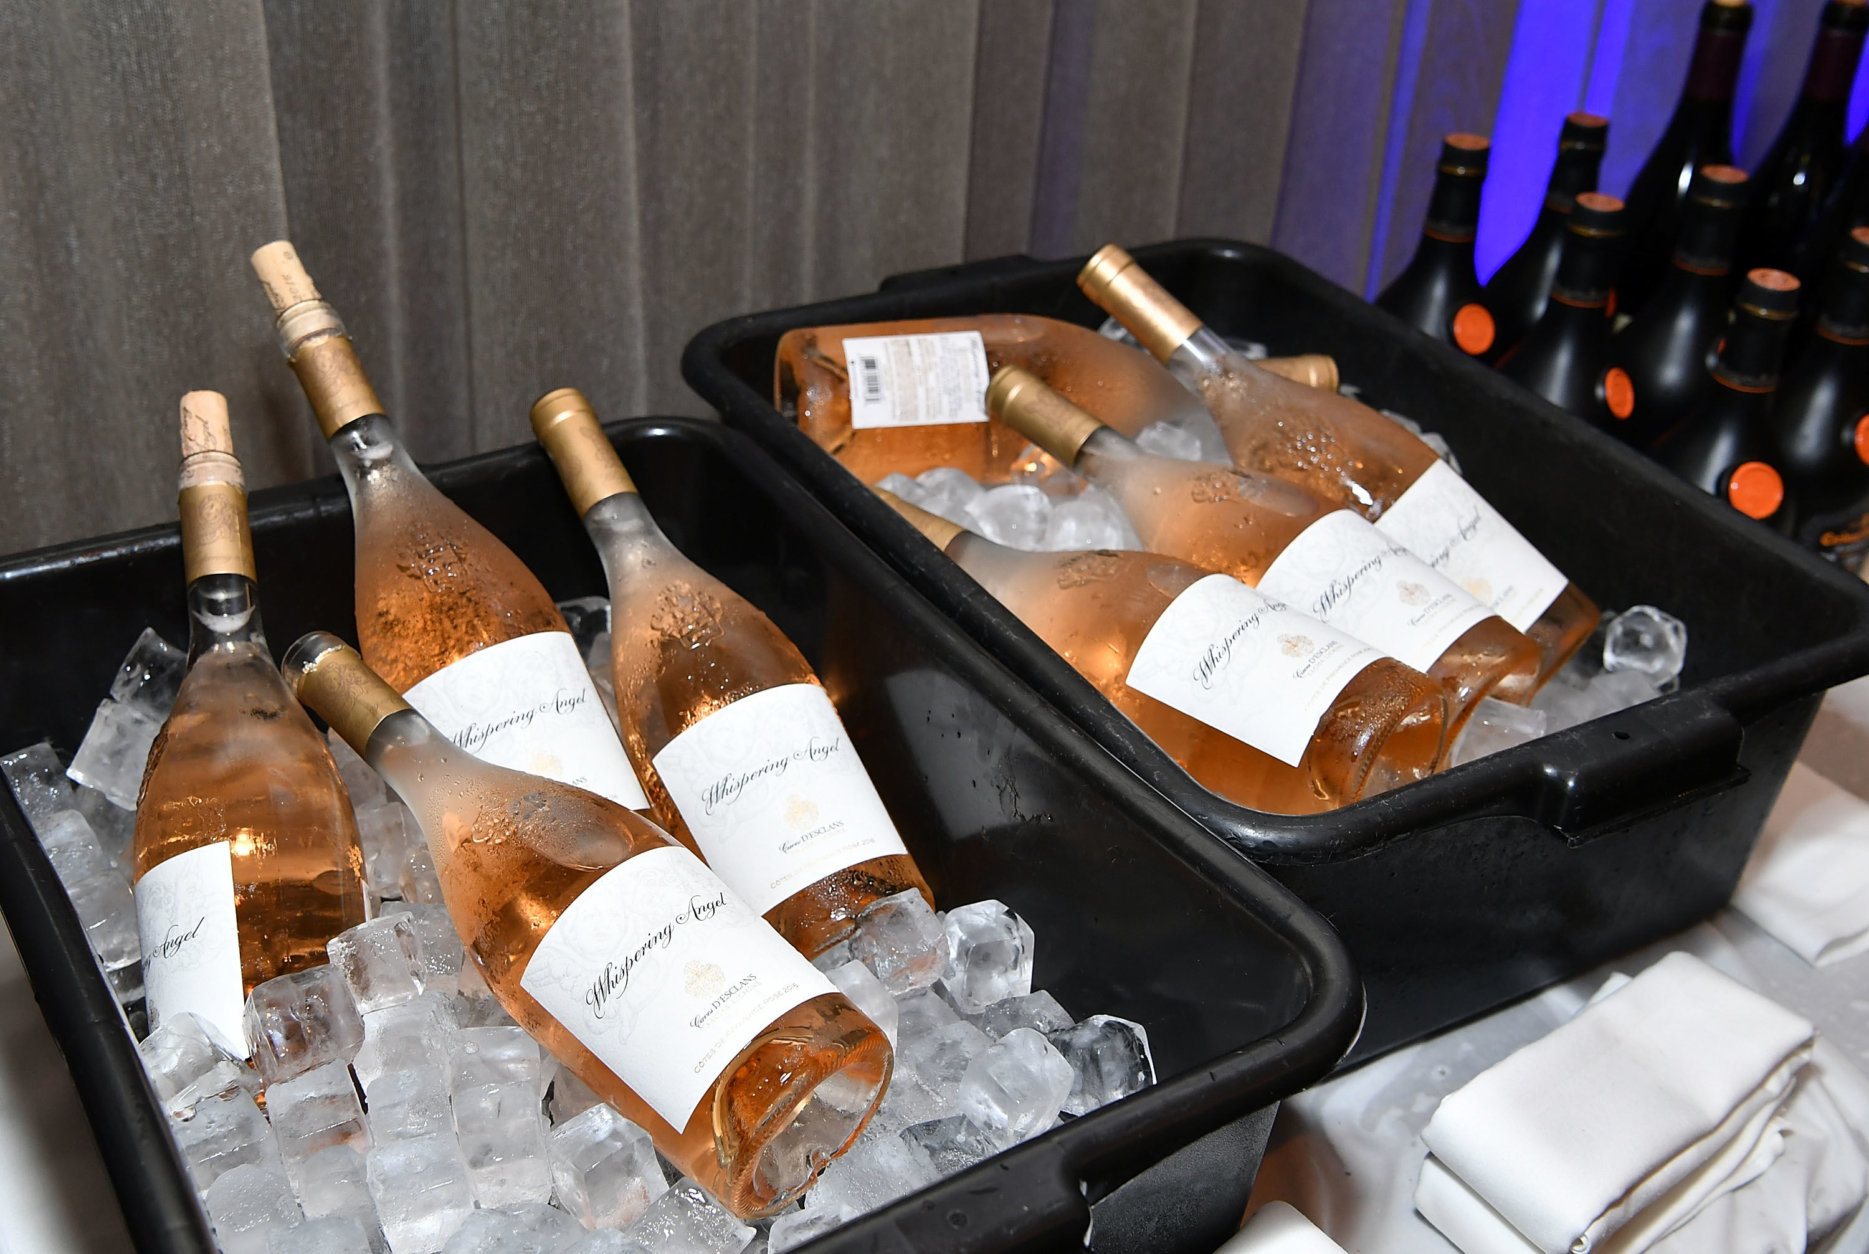 NEW YORK, NY - OCTOBER 14: A view of iced wine bottles at an intimate dinner hosted by Barclaycard Arrival+ at The Knickerbocker Hotel  on October 14, 2017 in New York City.  (Photo by Slaven Vlasic/Getty Images for Barclaycard)